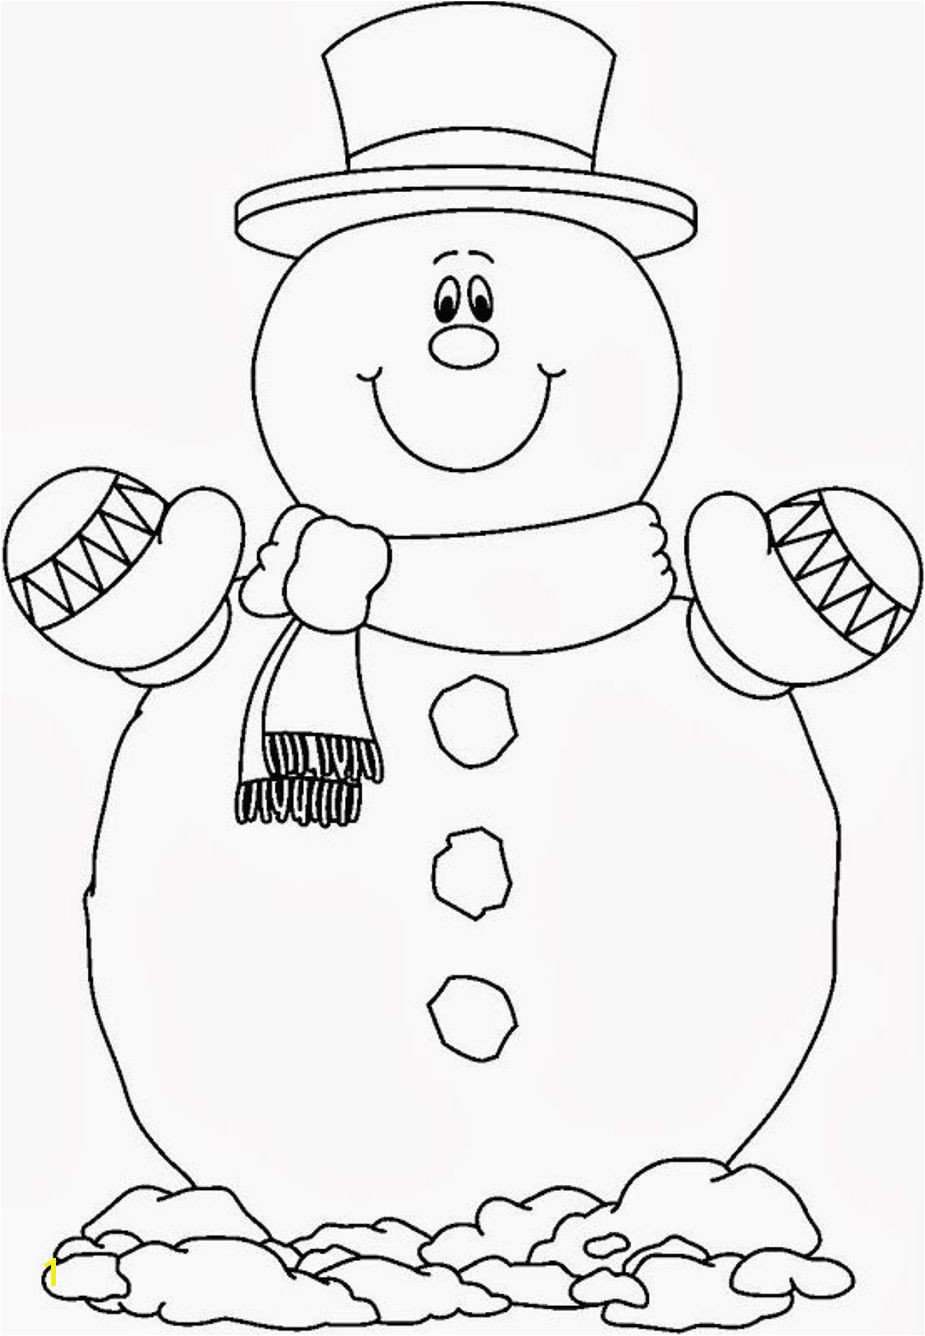 Let It Snow Coloring Pages Smilling Snowman Coloring Pages Free Christmas Crafts